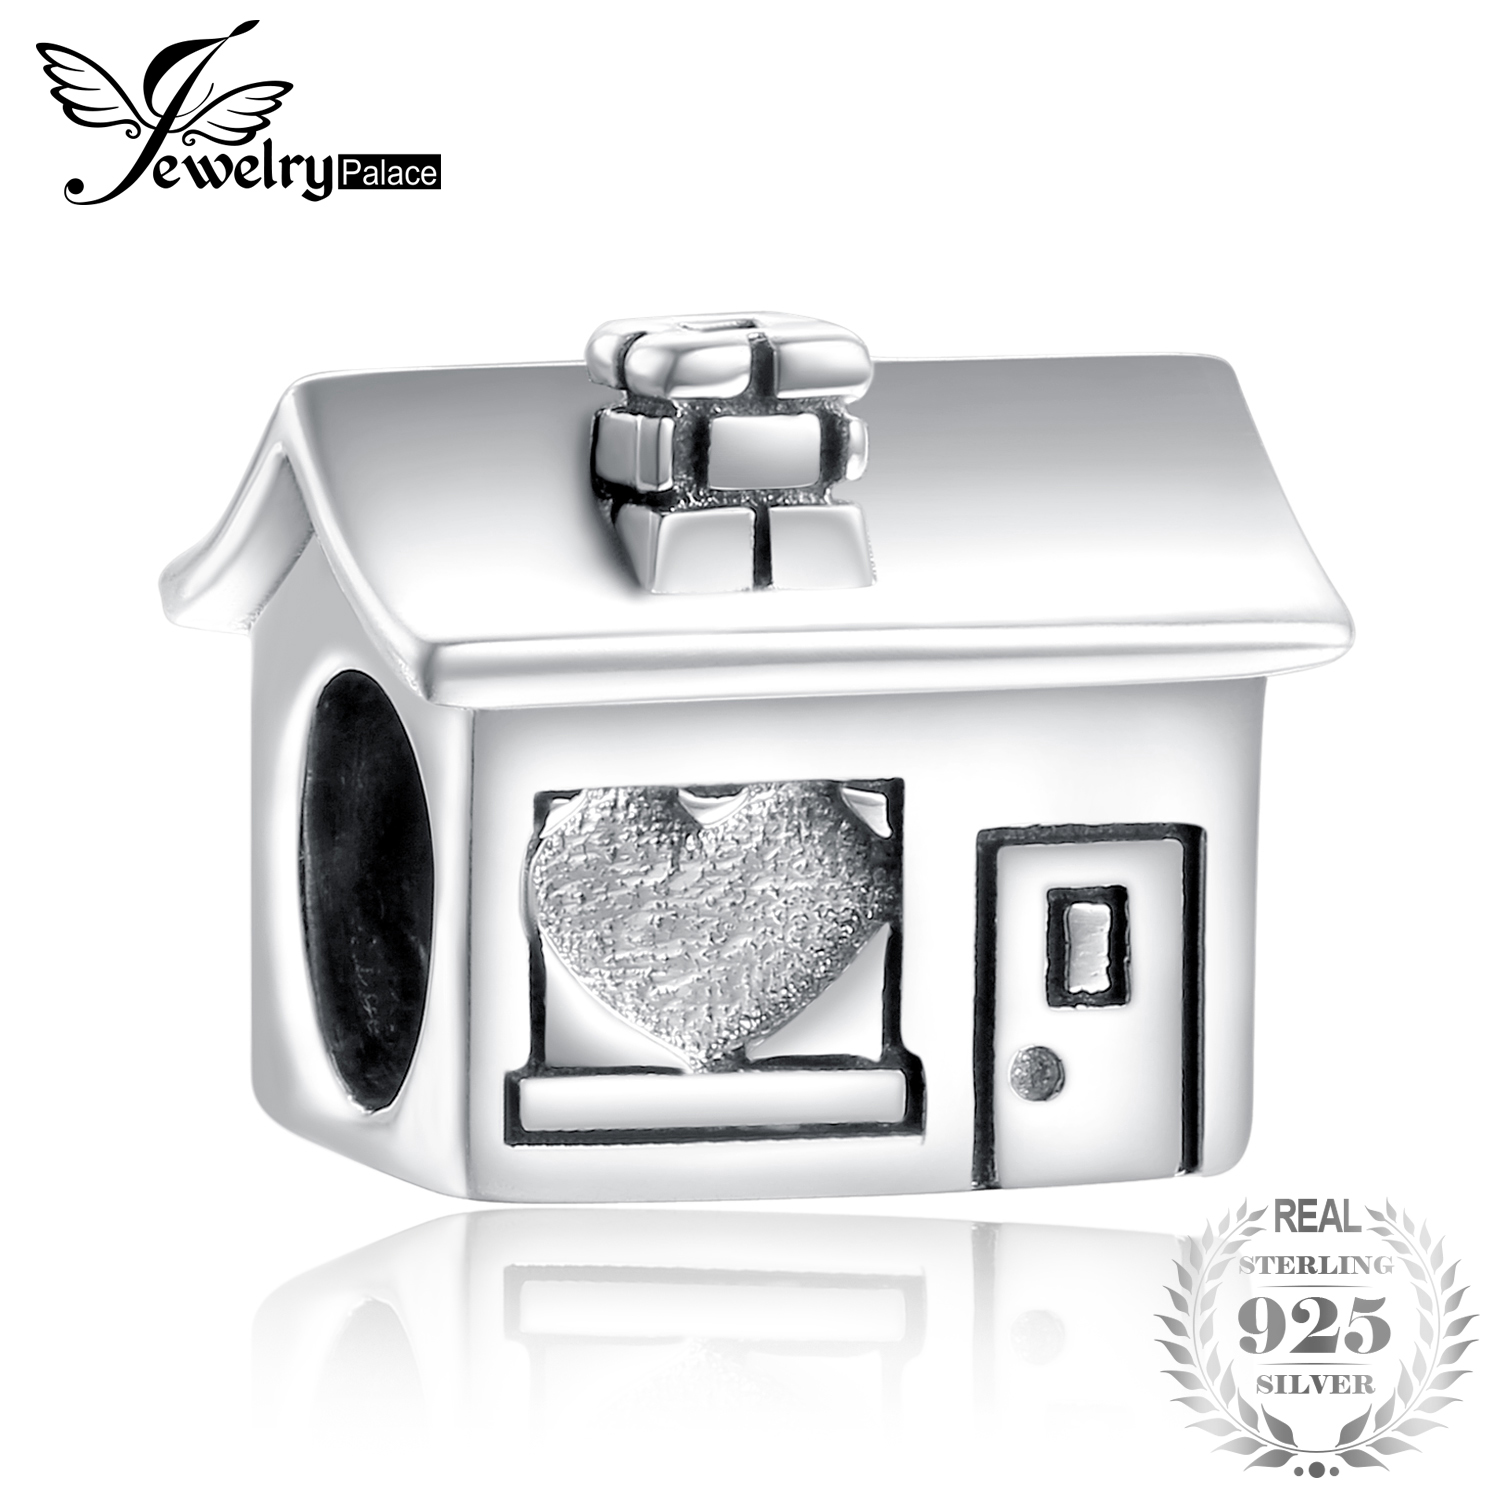 JewelryPalace 925 Sterling Silver Heart Shape Window House Bead Charm Fit Bracelets Fashion DIY Bead Charm For Women BraceletsJewelryPalace 925 Sterling Silver Heart Shape Window House Bead Charm Fit Bracelets Fashion DIY Bead Charm For Women Bracelets